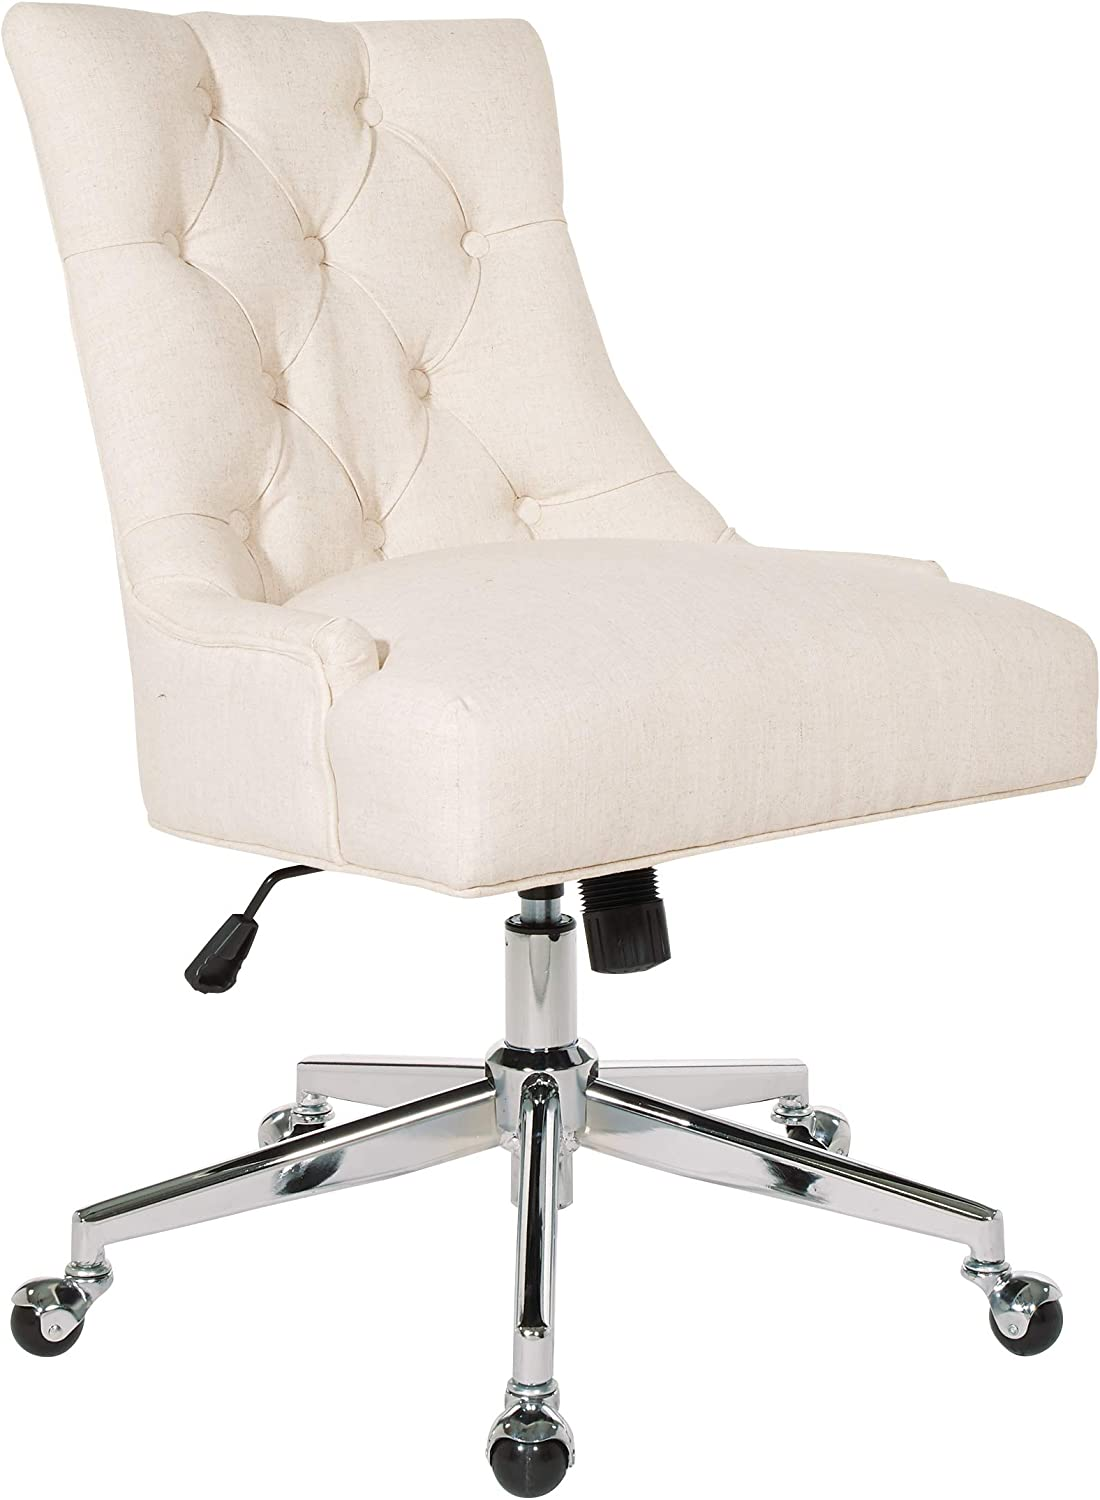 OSP Home Furnishings Amelia Office Chair, Linen